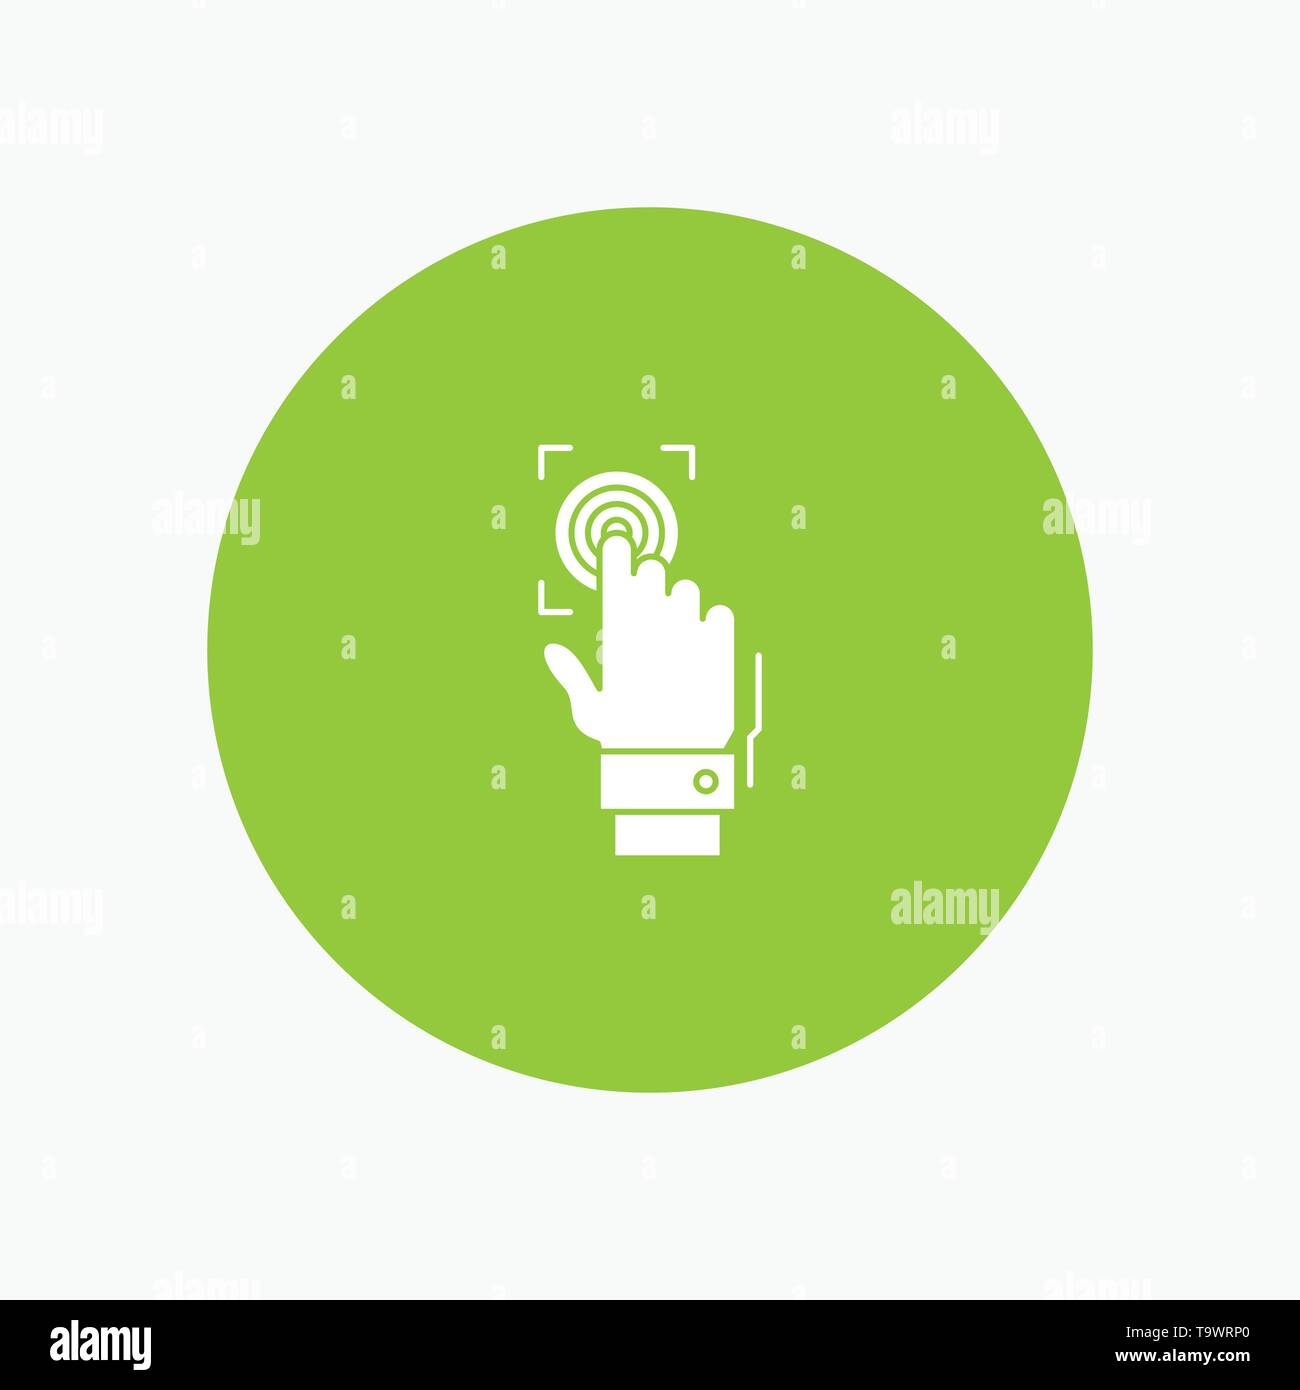 Fingerprint, Identity, Recognition, Scan, Scanner, Scanning - Stock Image